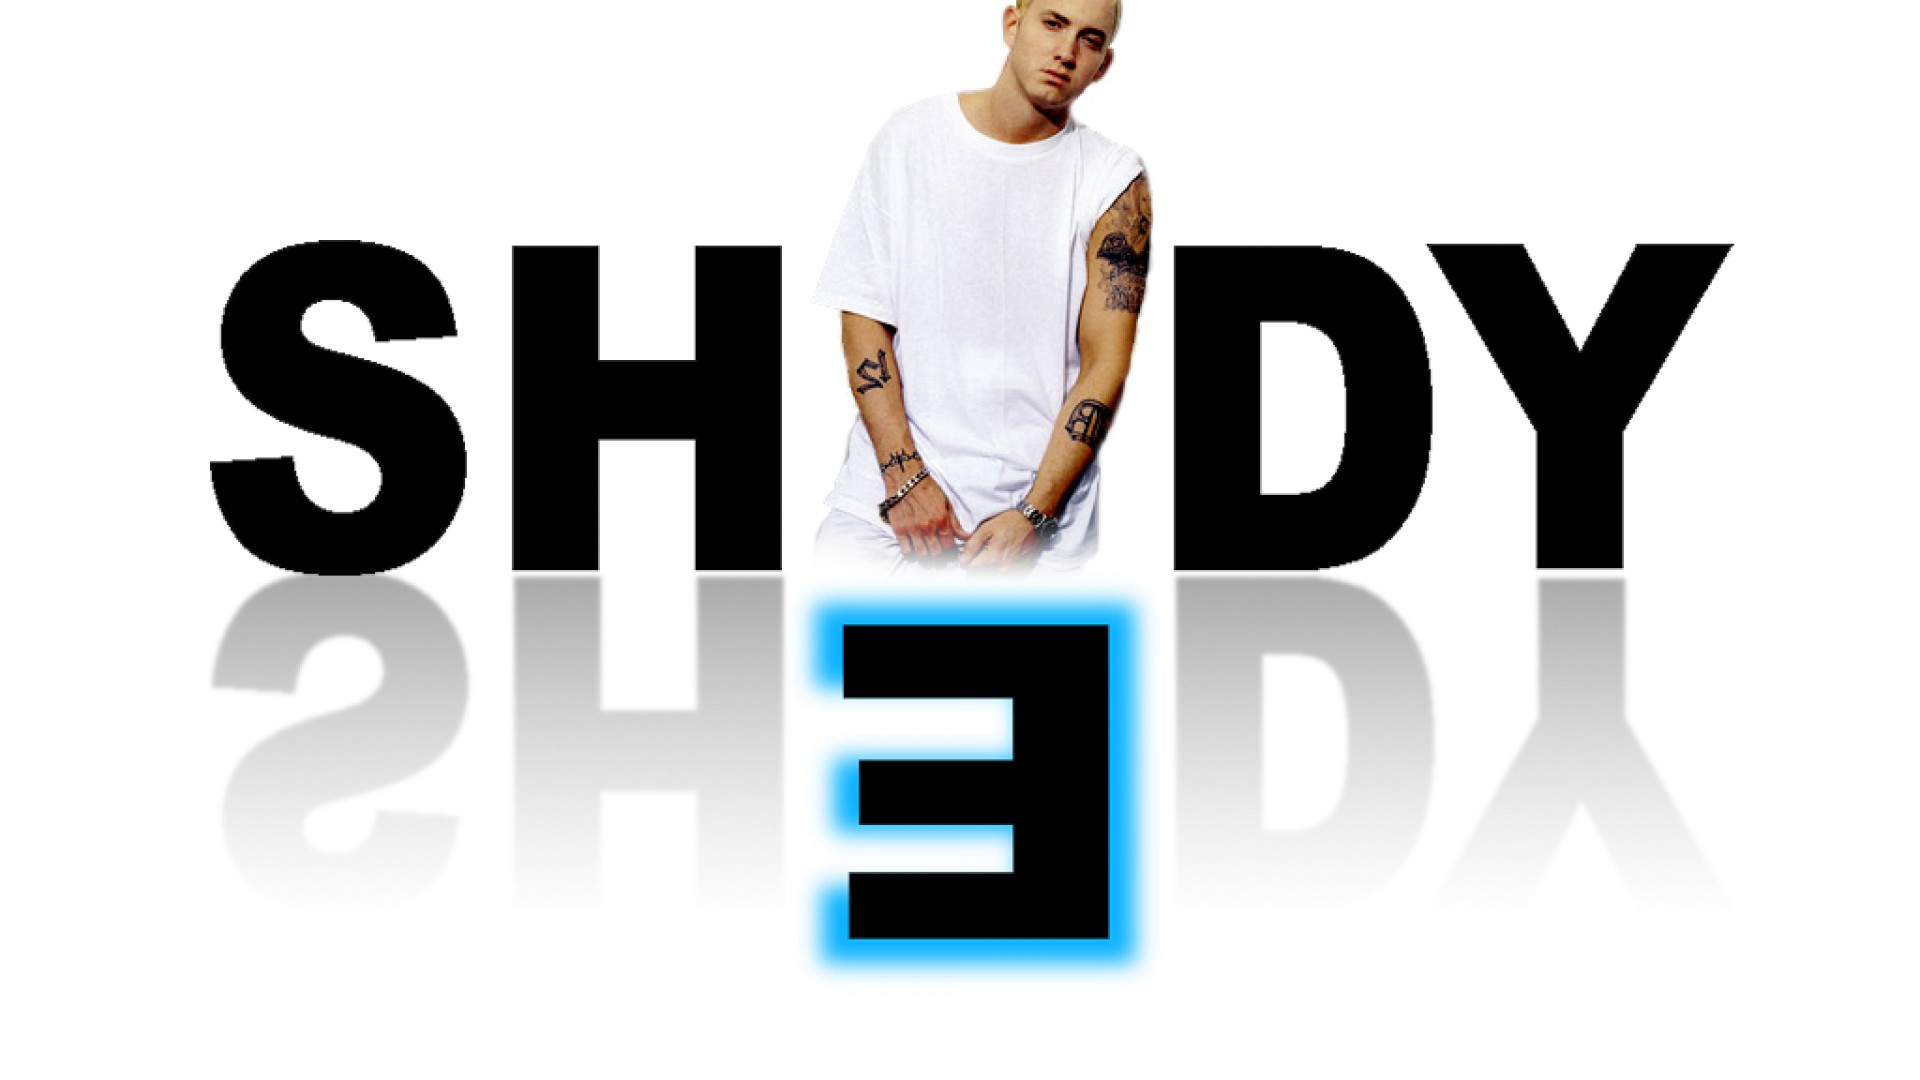 awesome eminem wallpaper  hdwallpapers download.com